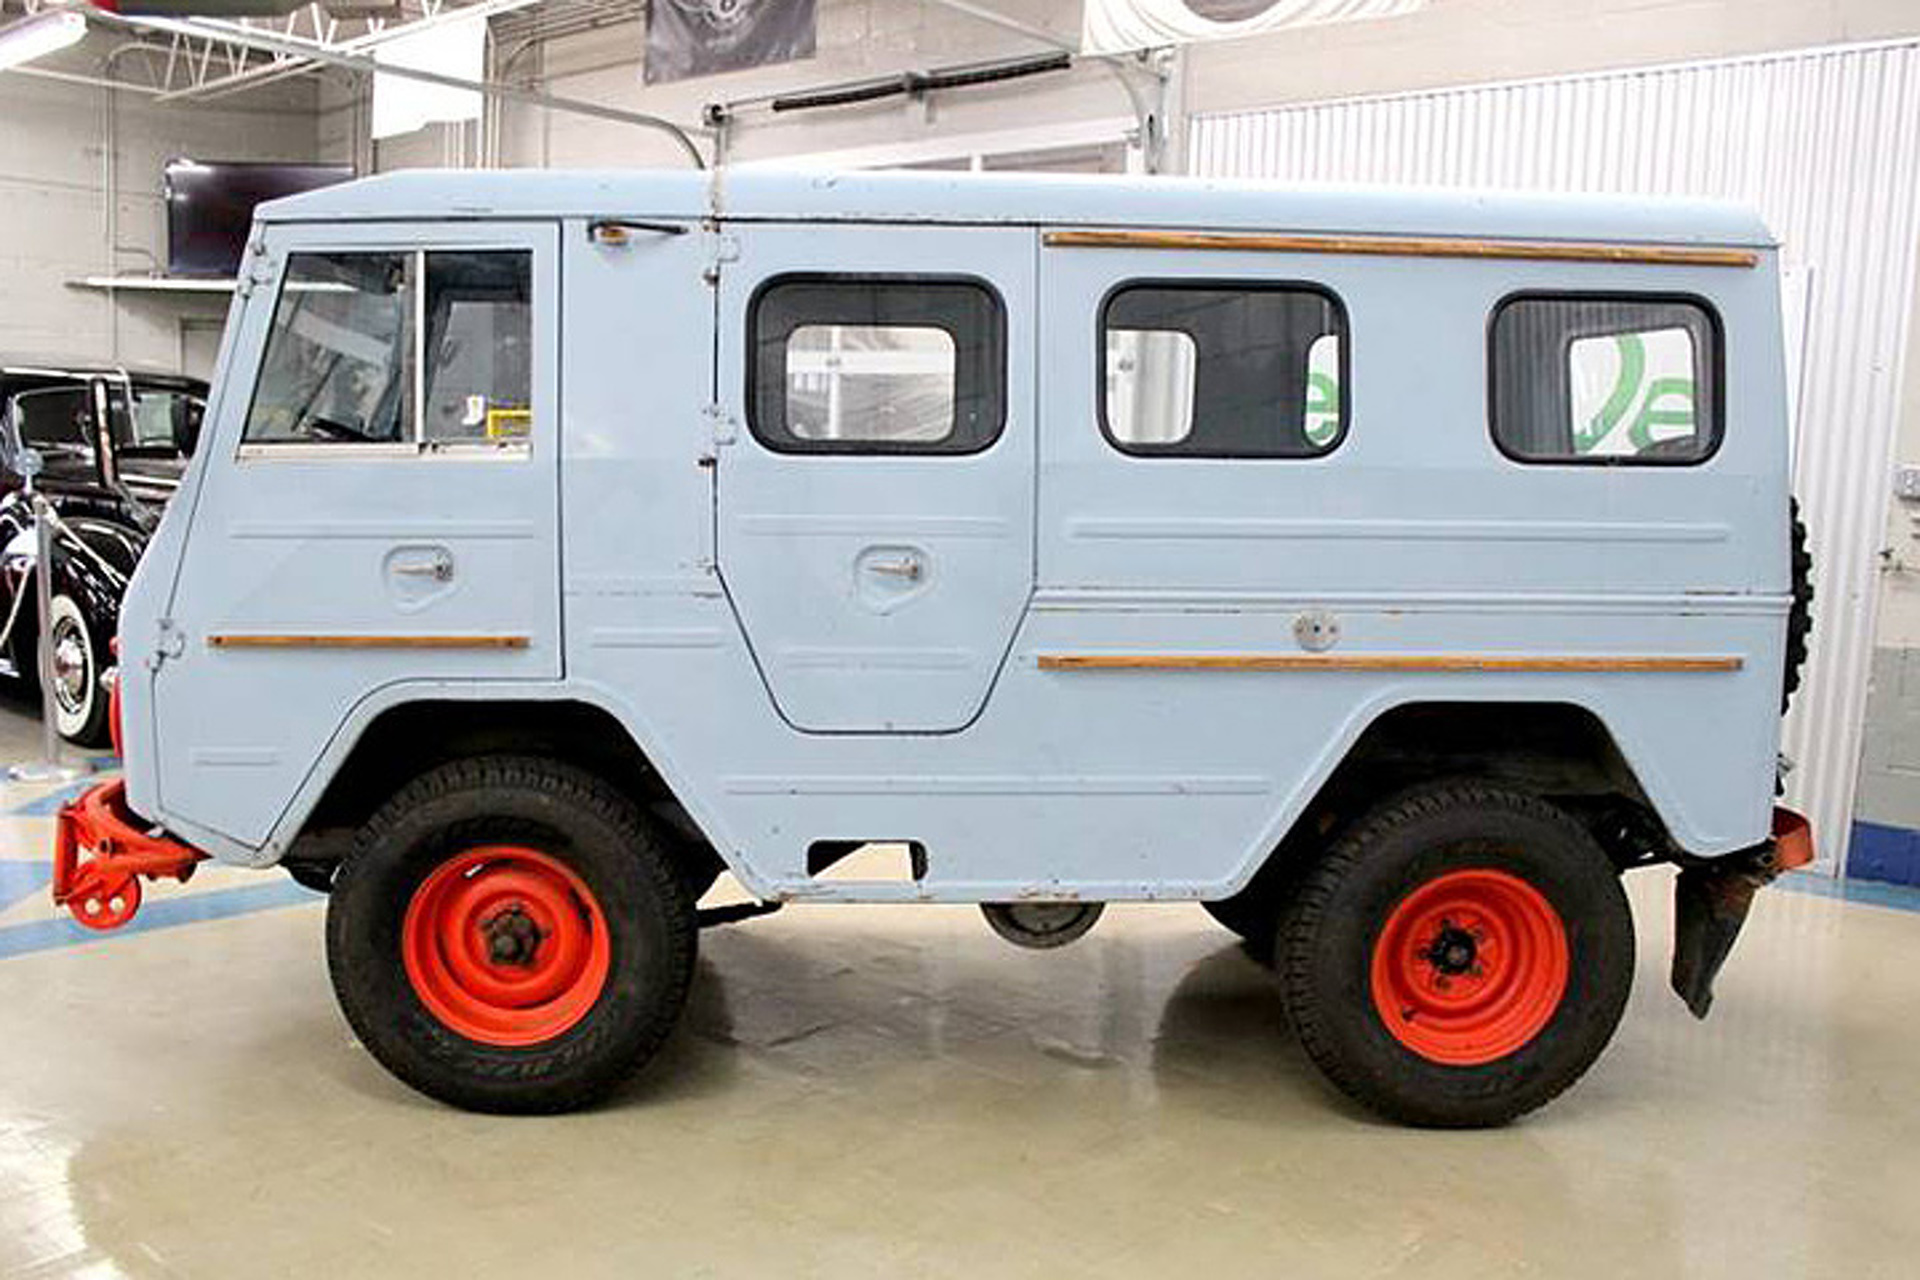 Jeep With Plow >> Buy This Vintage Volvo Laplander 4x4, Be the Coolest Person on the Trail